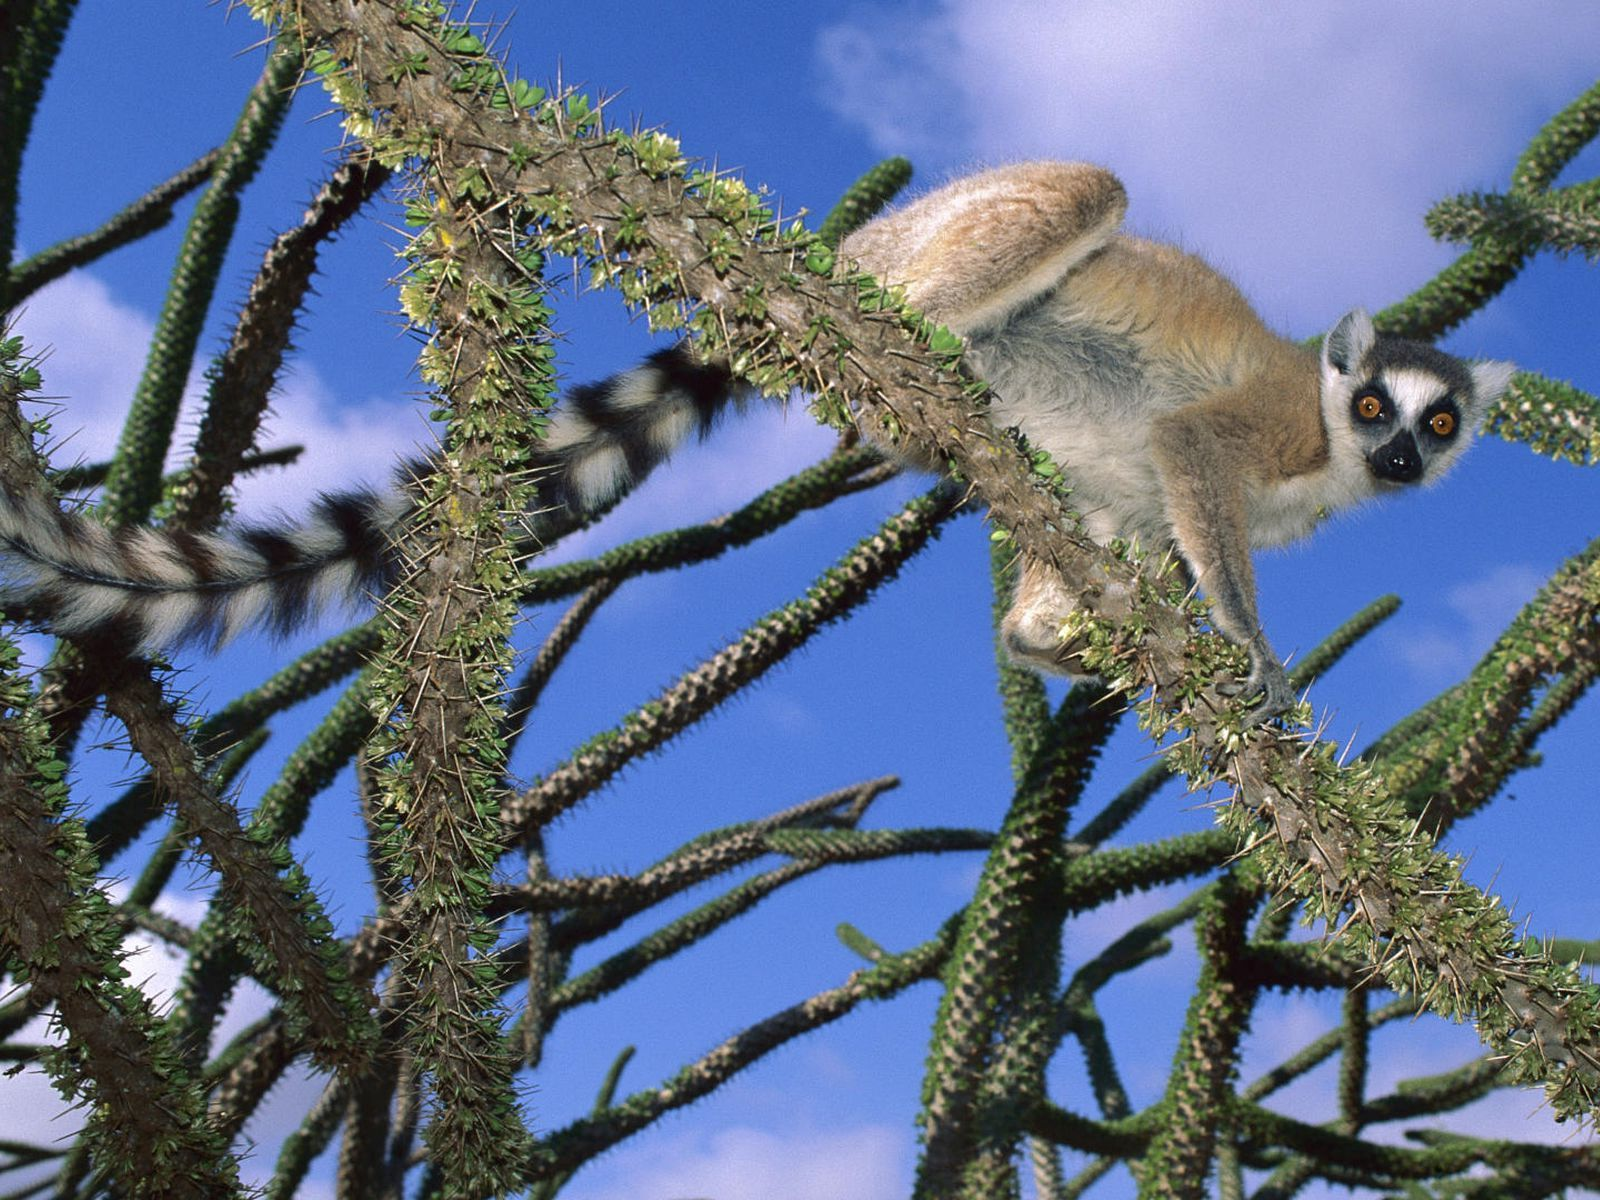 116809 download wallpaper Animals, Lemur, Trees, Climb, Nice, Sweetheart, Striped screensavers and pictures for free